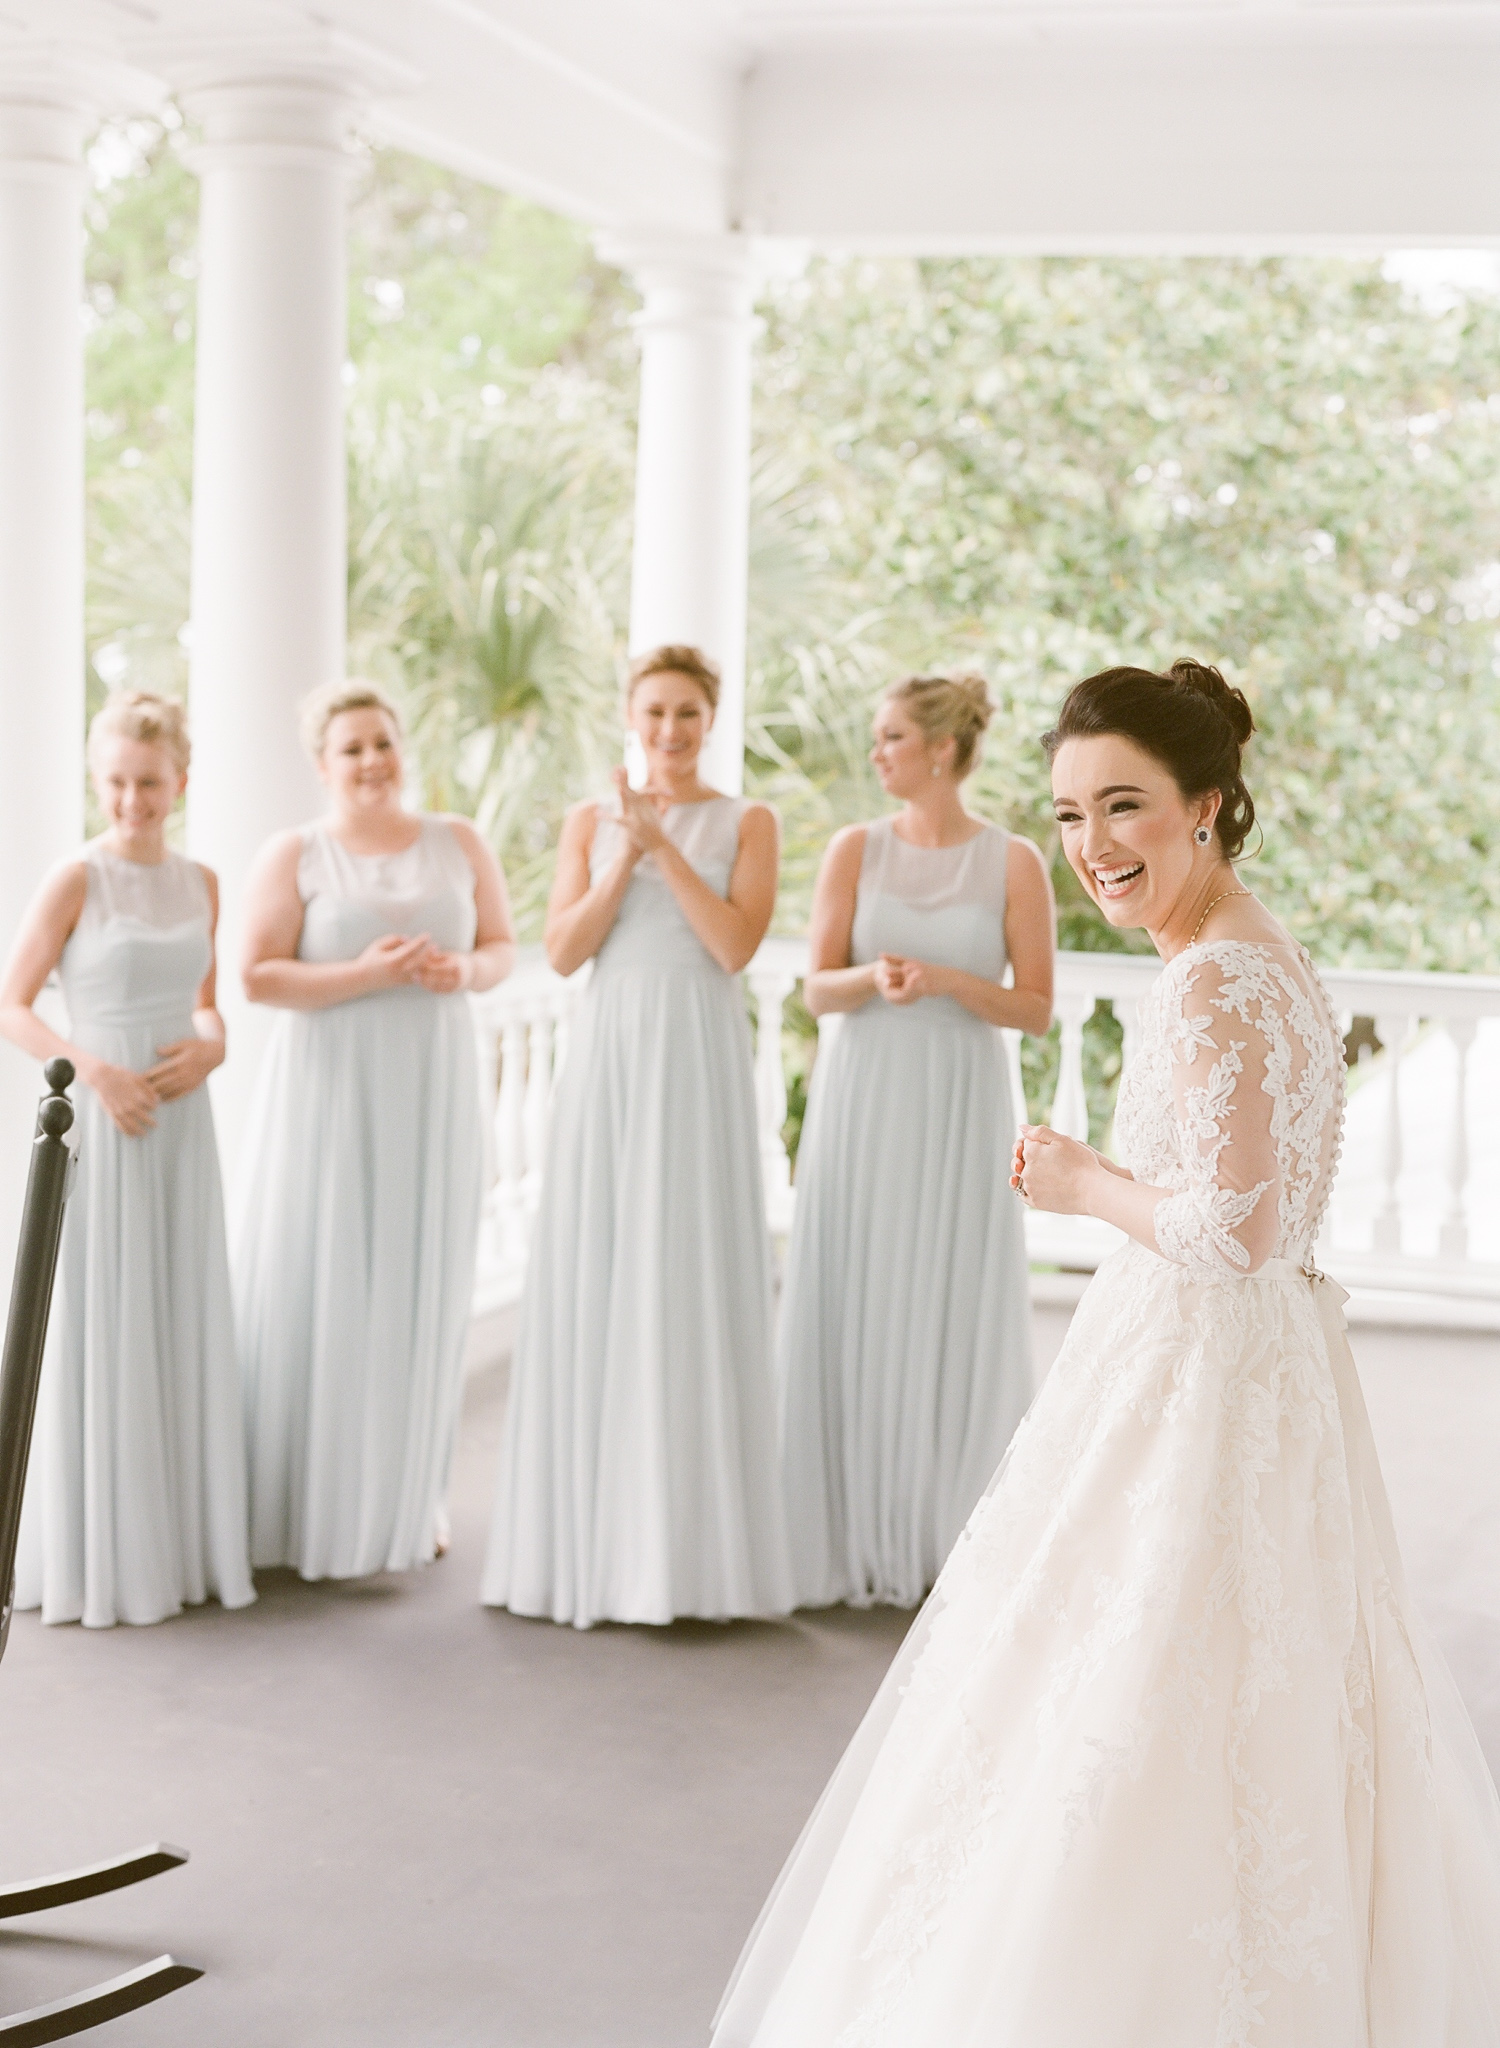 Charleston-Lowndes-Grove-Wedding-PPHG-23.jpg